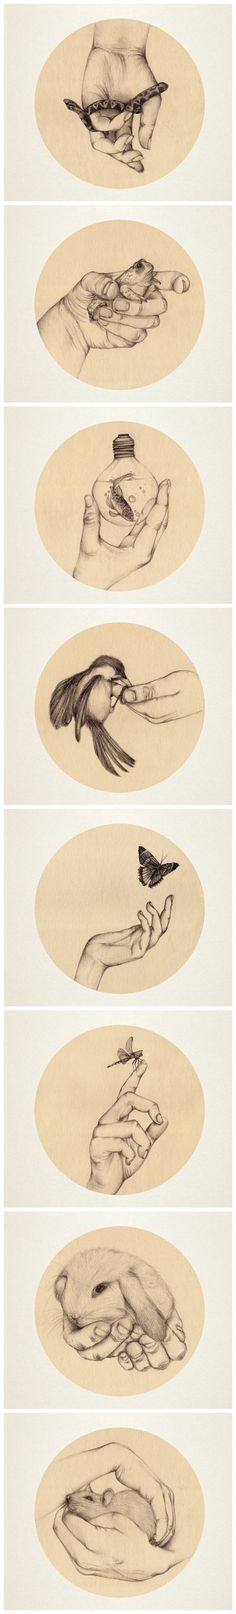 Drawing hand holding something artists ideas Illustrations, Illustration Art, Ap Art, Cool Drawings, Animal Drawings, Art Studios, Oeuvre D'art, Art Lessons, Art Inspo